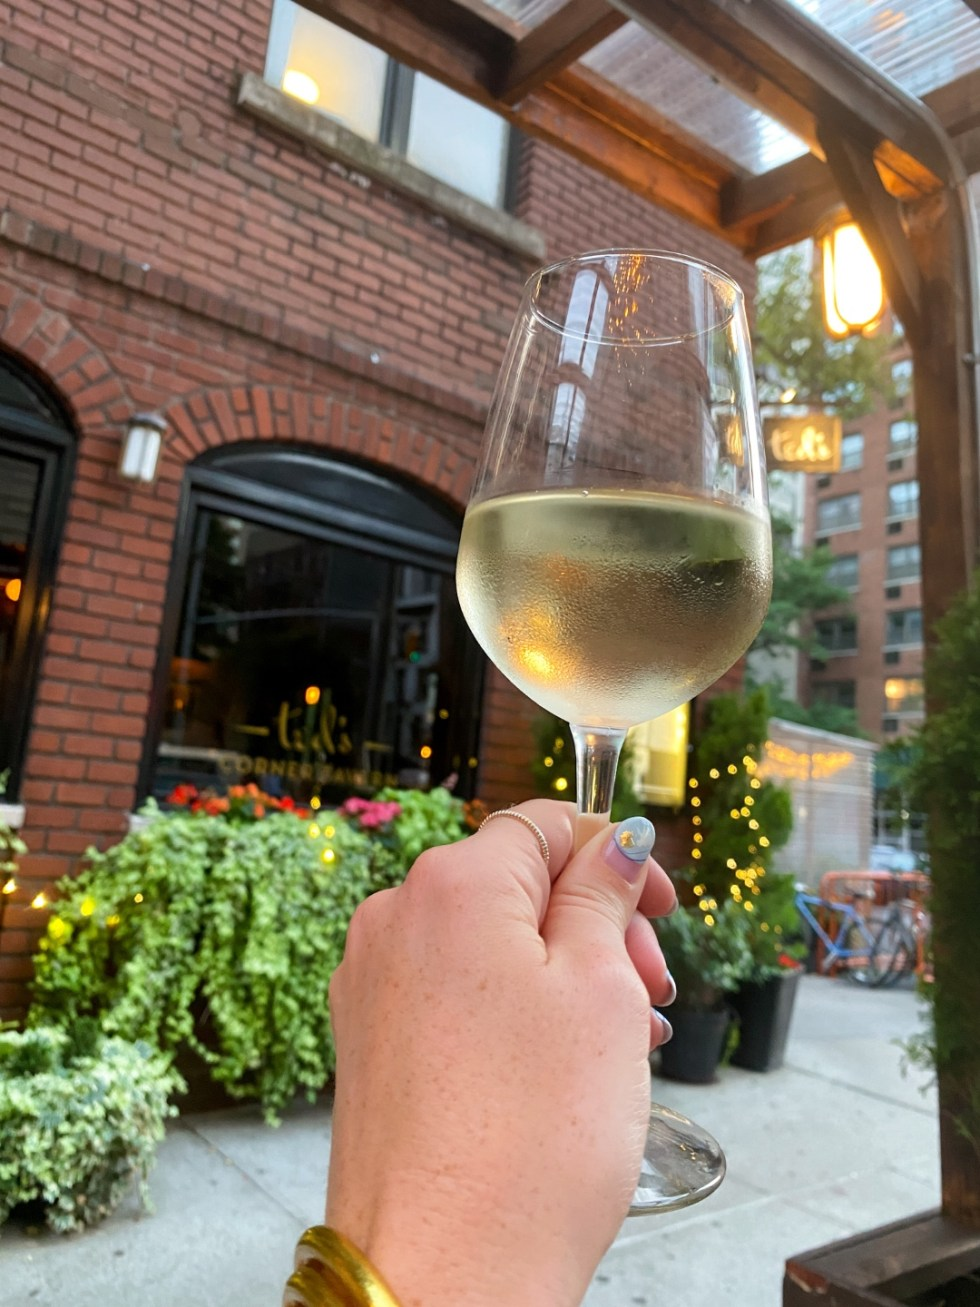 NYC Summer Weekend: Things to Do in NYC in the Summer - I'm Fixin' To - @imfixintoblog   NYC Summer Weekend by popular NC travel blog, I'm Fixin' To: image of a woman holding a glass of white wine at Ted's corner tavern.